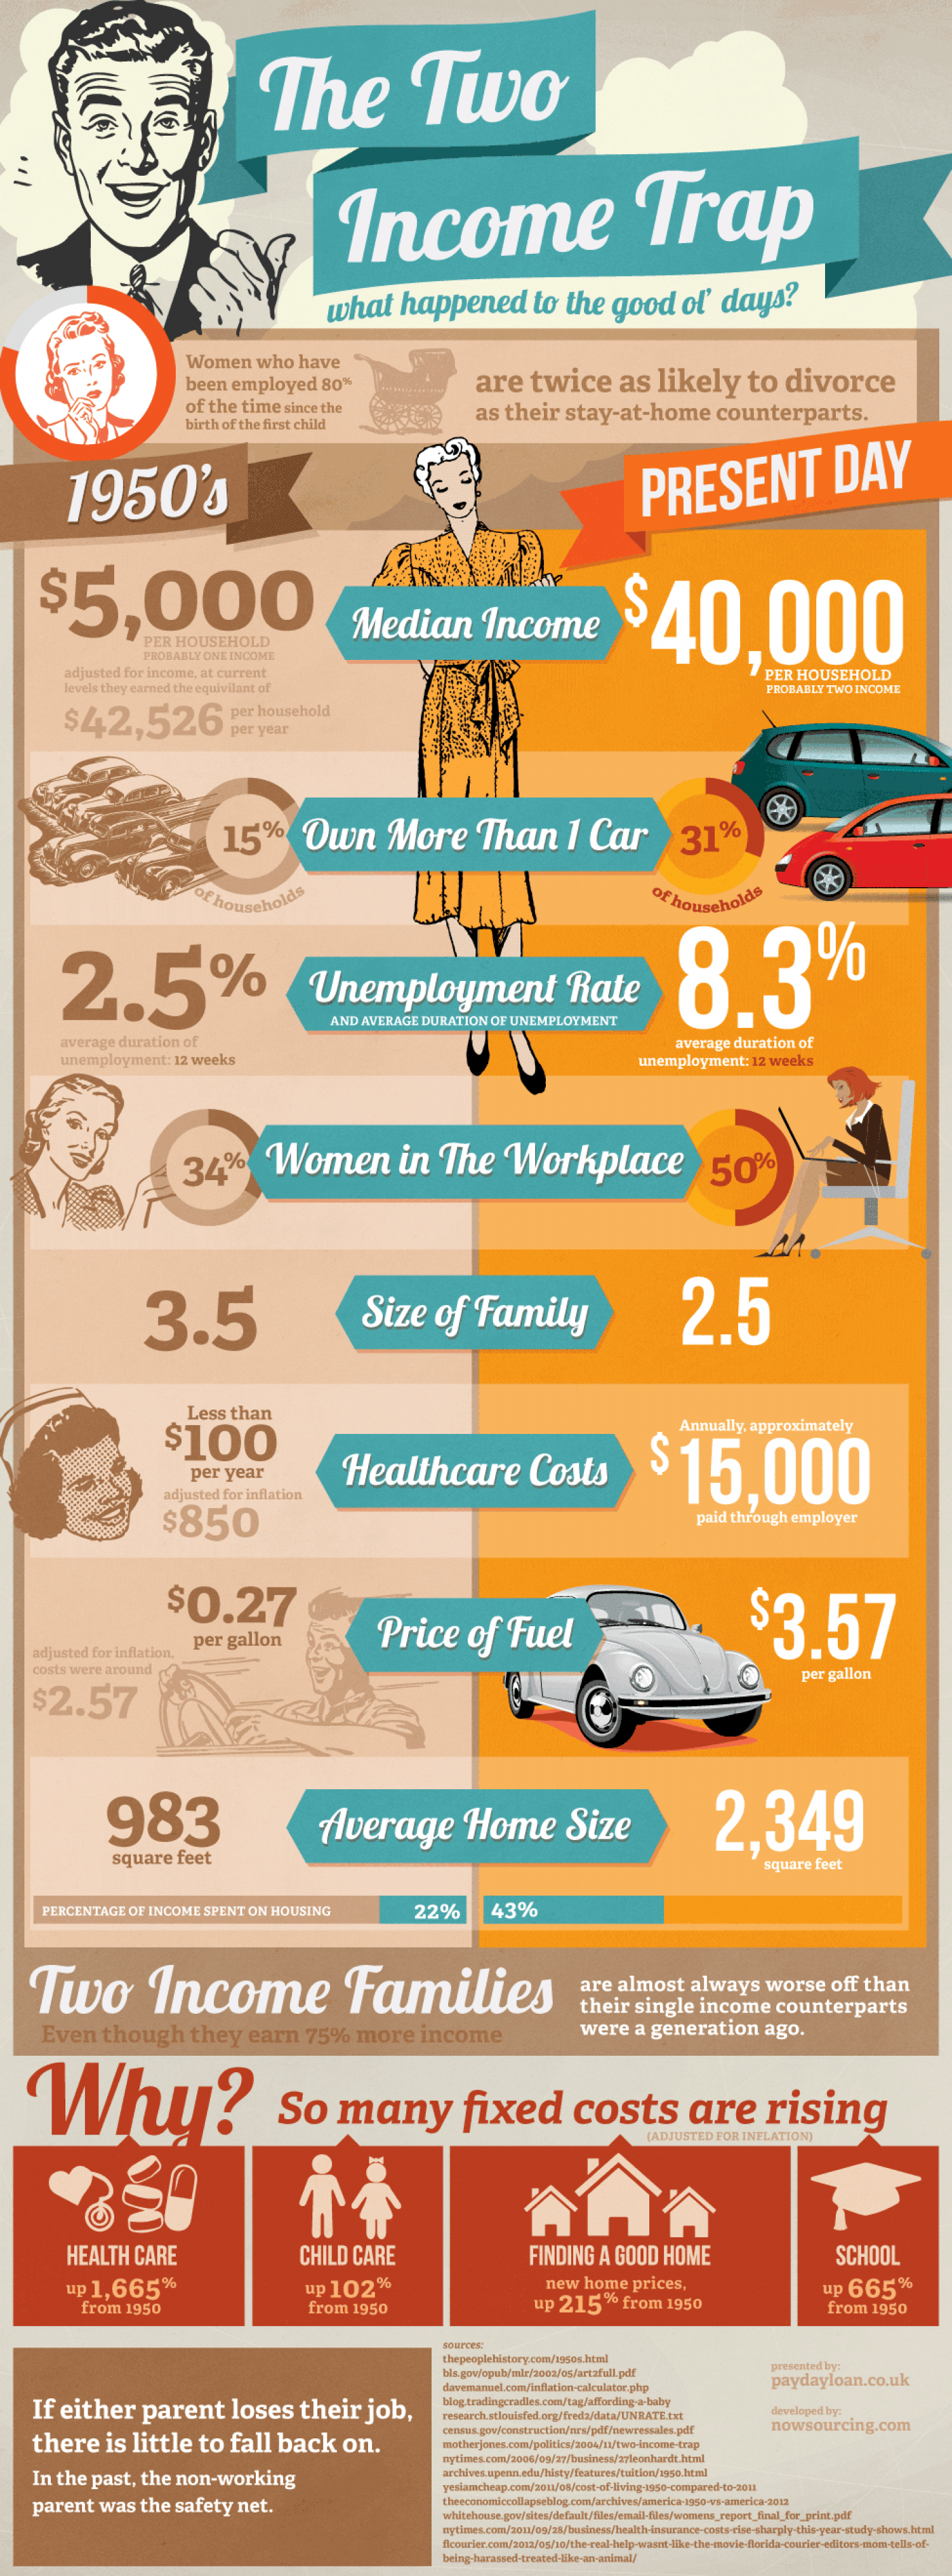 The Two Income Trap Infographic